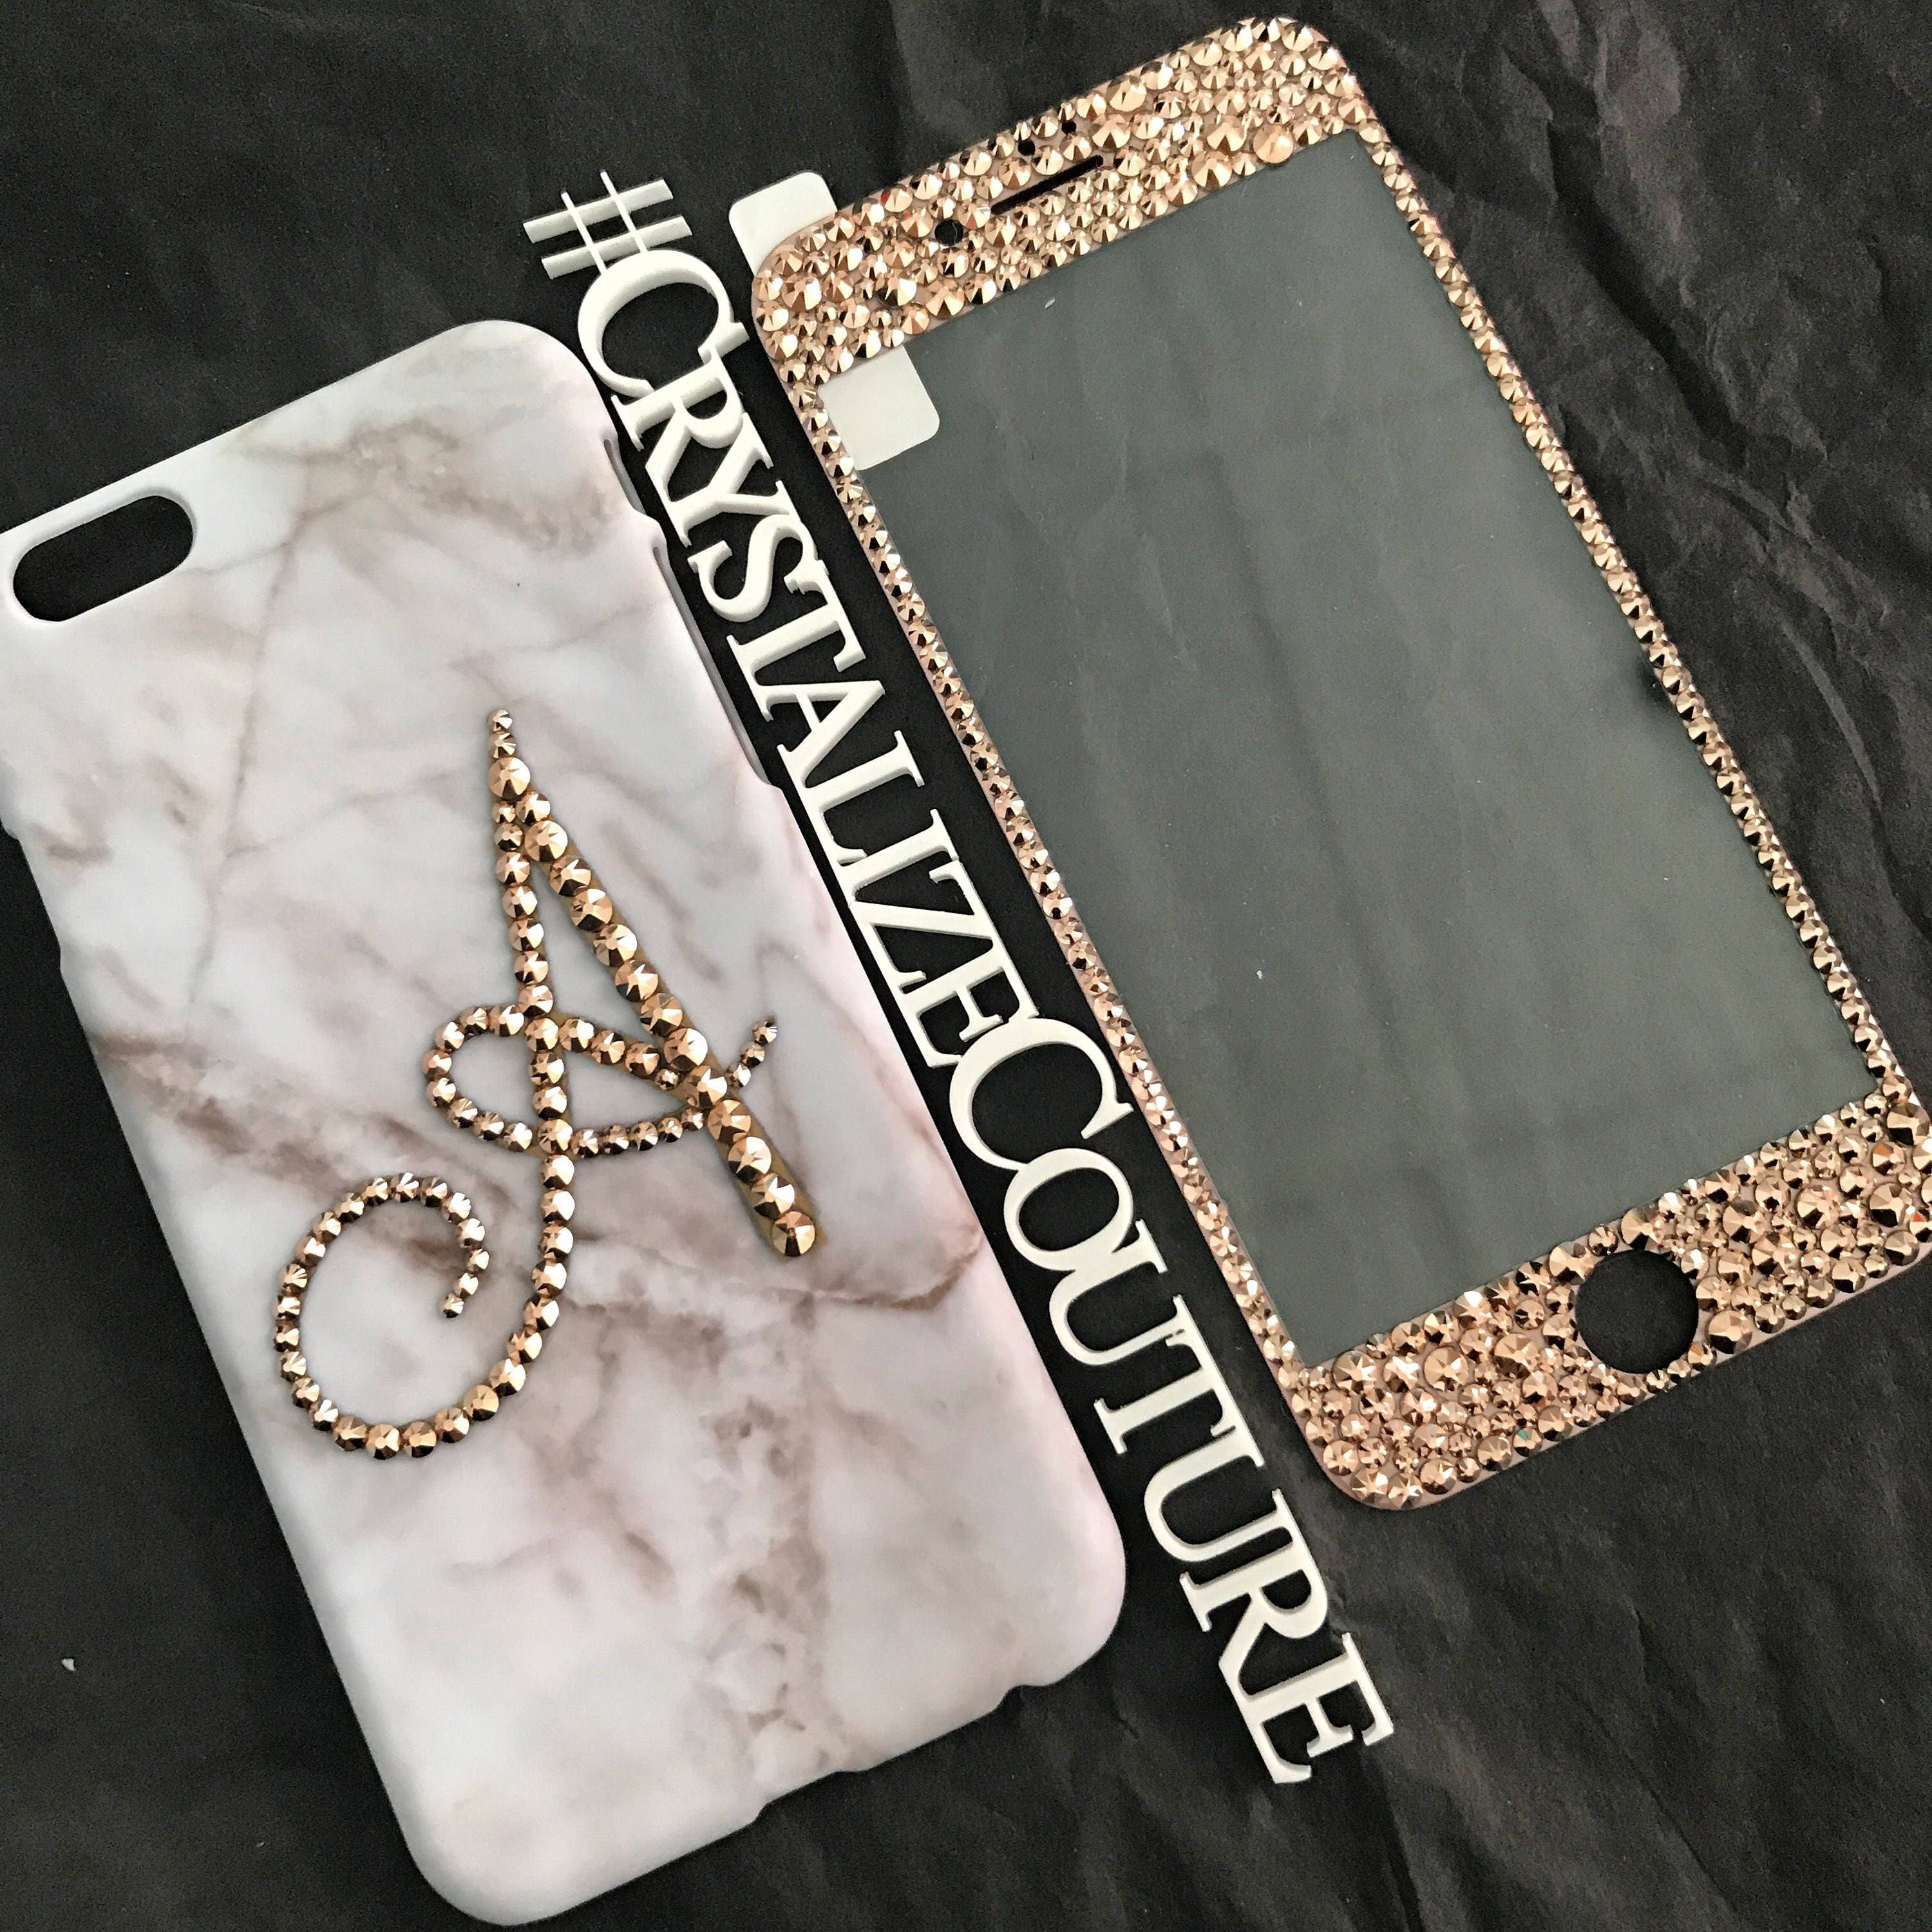 separation shoes fa8af 83ef2 Marble with rose gold, phone case and glass screen protector combo  embellished in genuine Swarovski crystals by Crystalize Couture